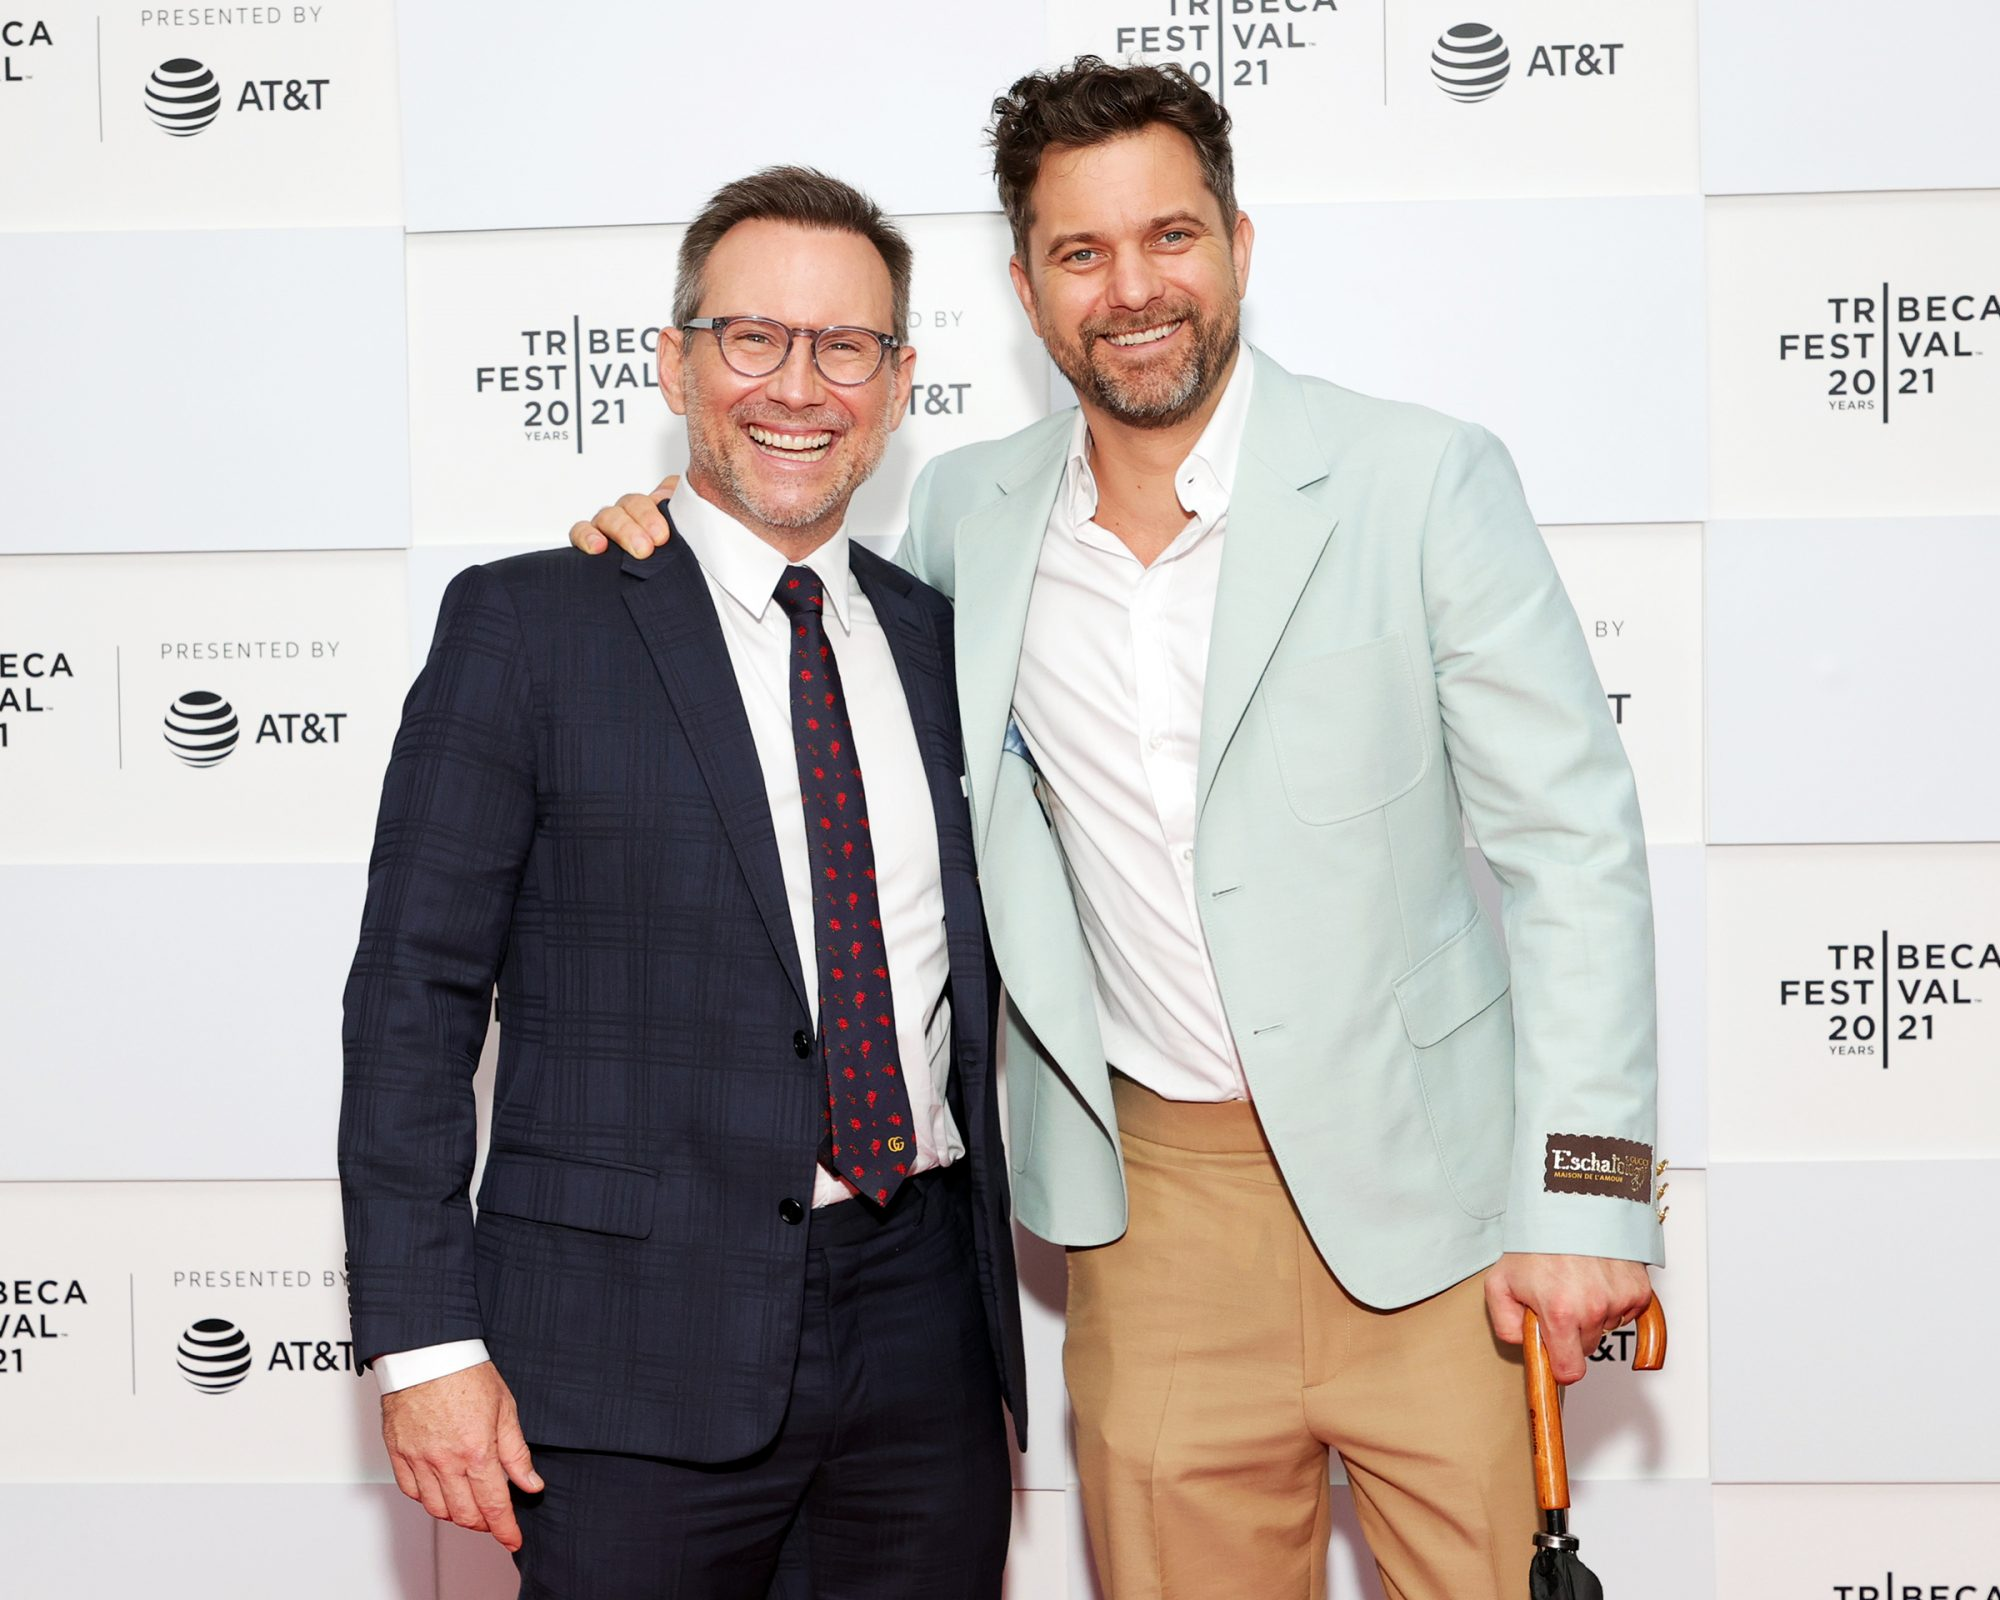 """Christian Slater and Joshua Jackson attend 2021 Tribeca Festival Premiere of """"Dr. Death"""" at Pier 76 on June 14, 2021 in New York City"""